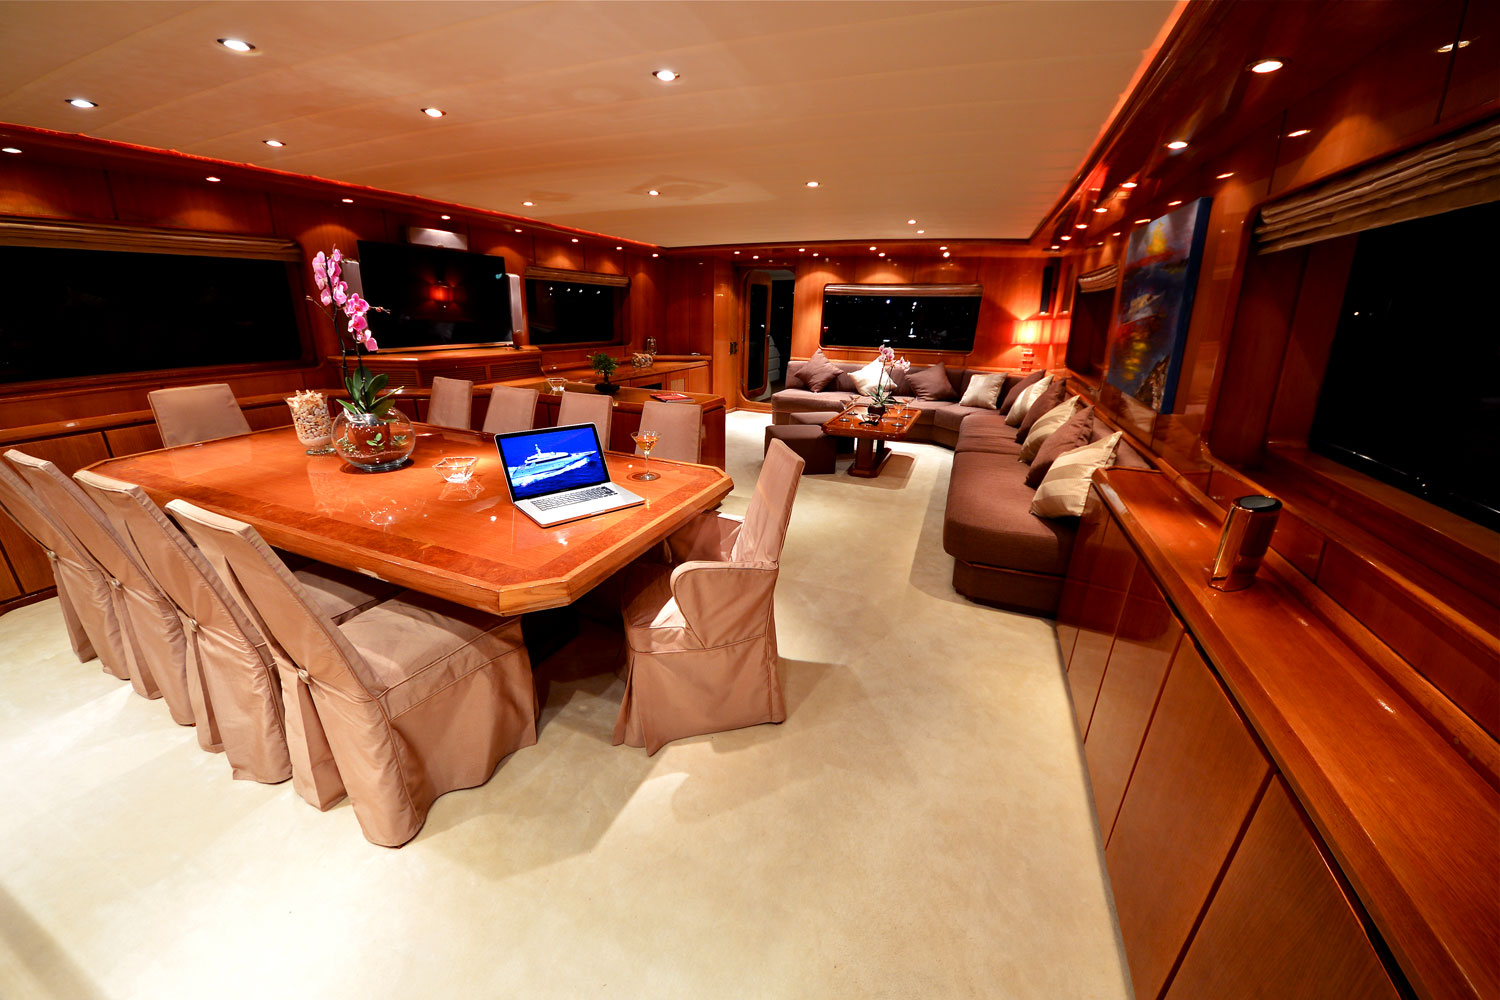 Formal dining area and maon salon aboard superyacht for Formal dining area